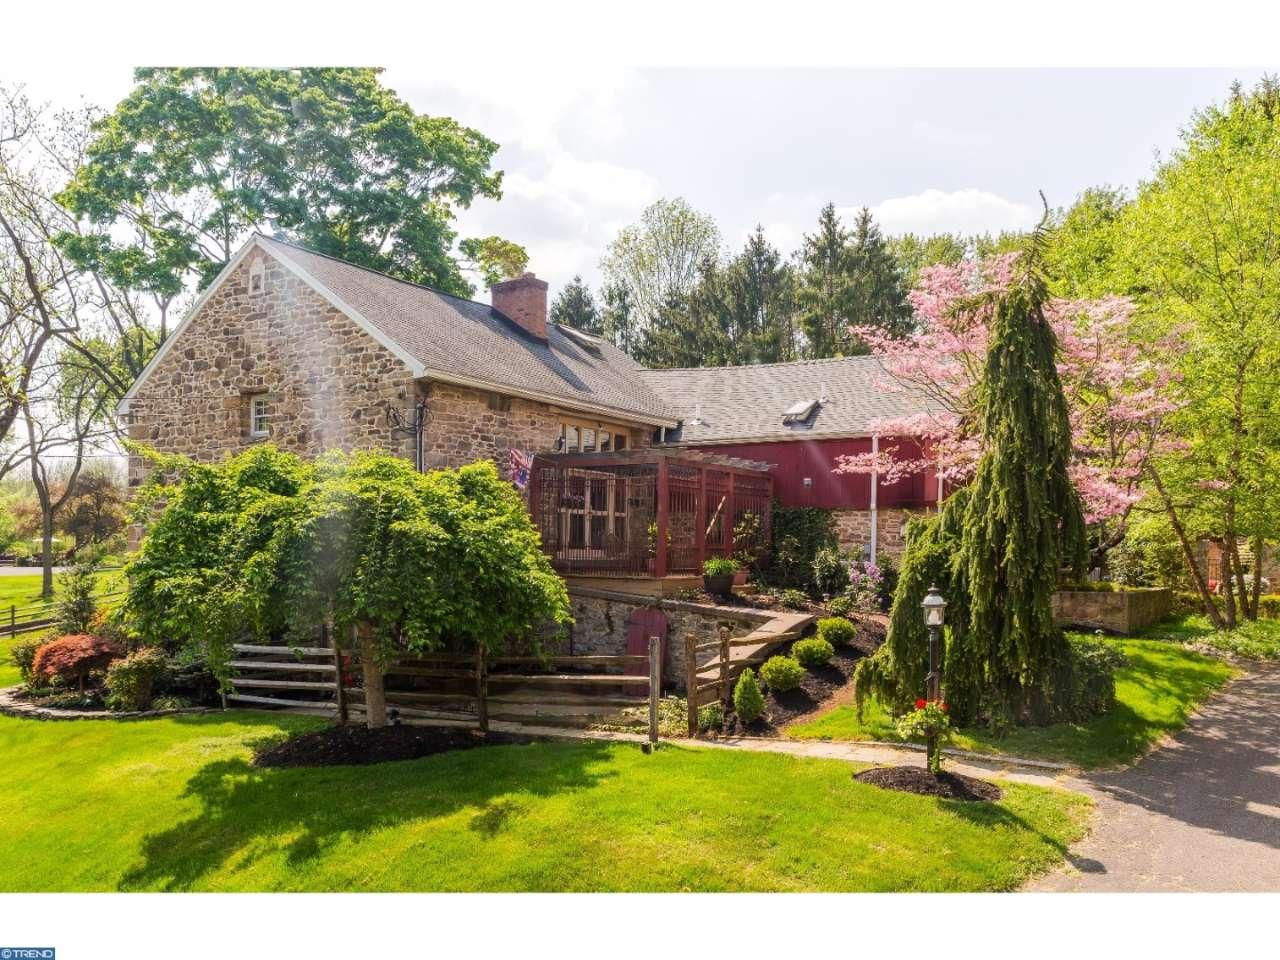 The Leap Year Barn a Storybook Masterpiece for sale in Doylestown PA - you will fall in love with this magical old world home